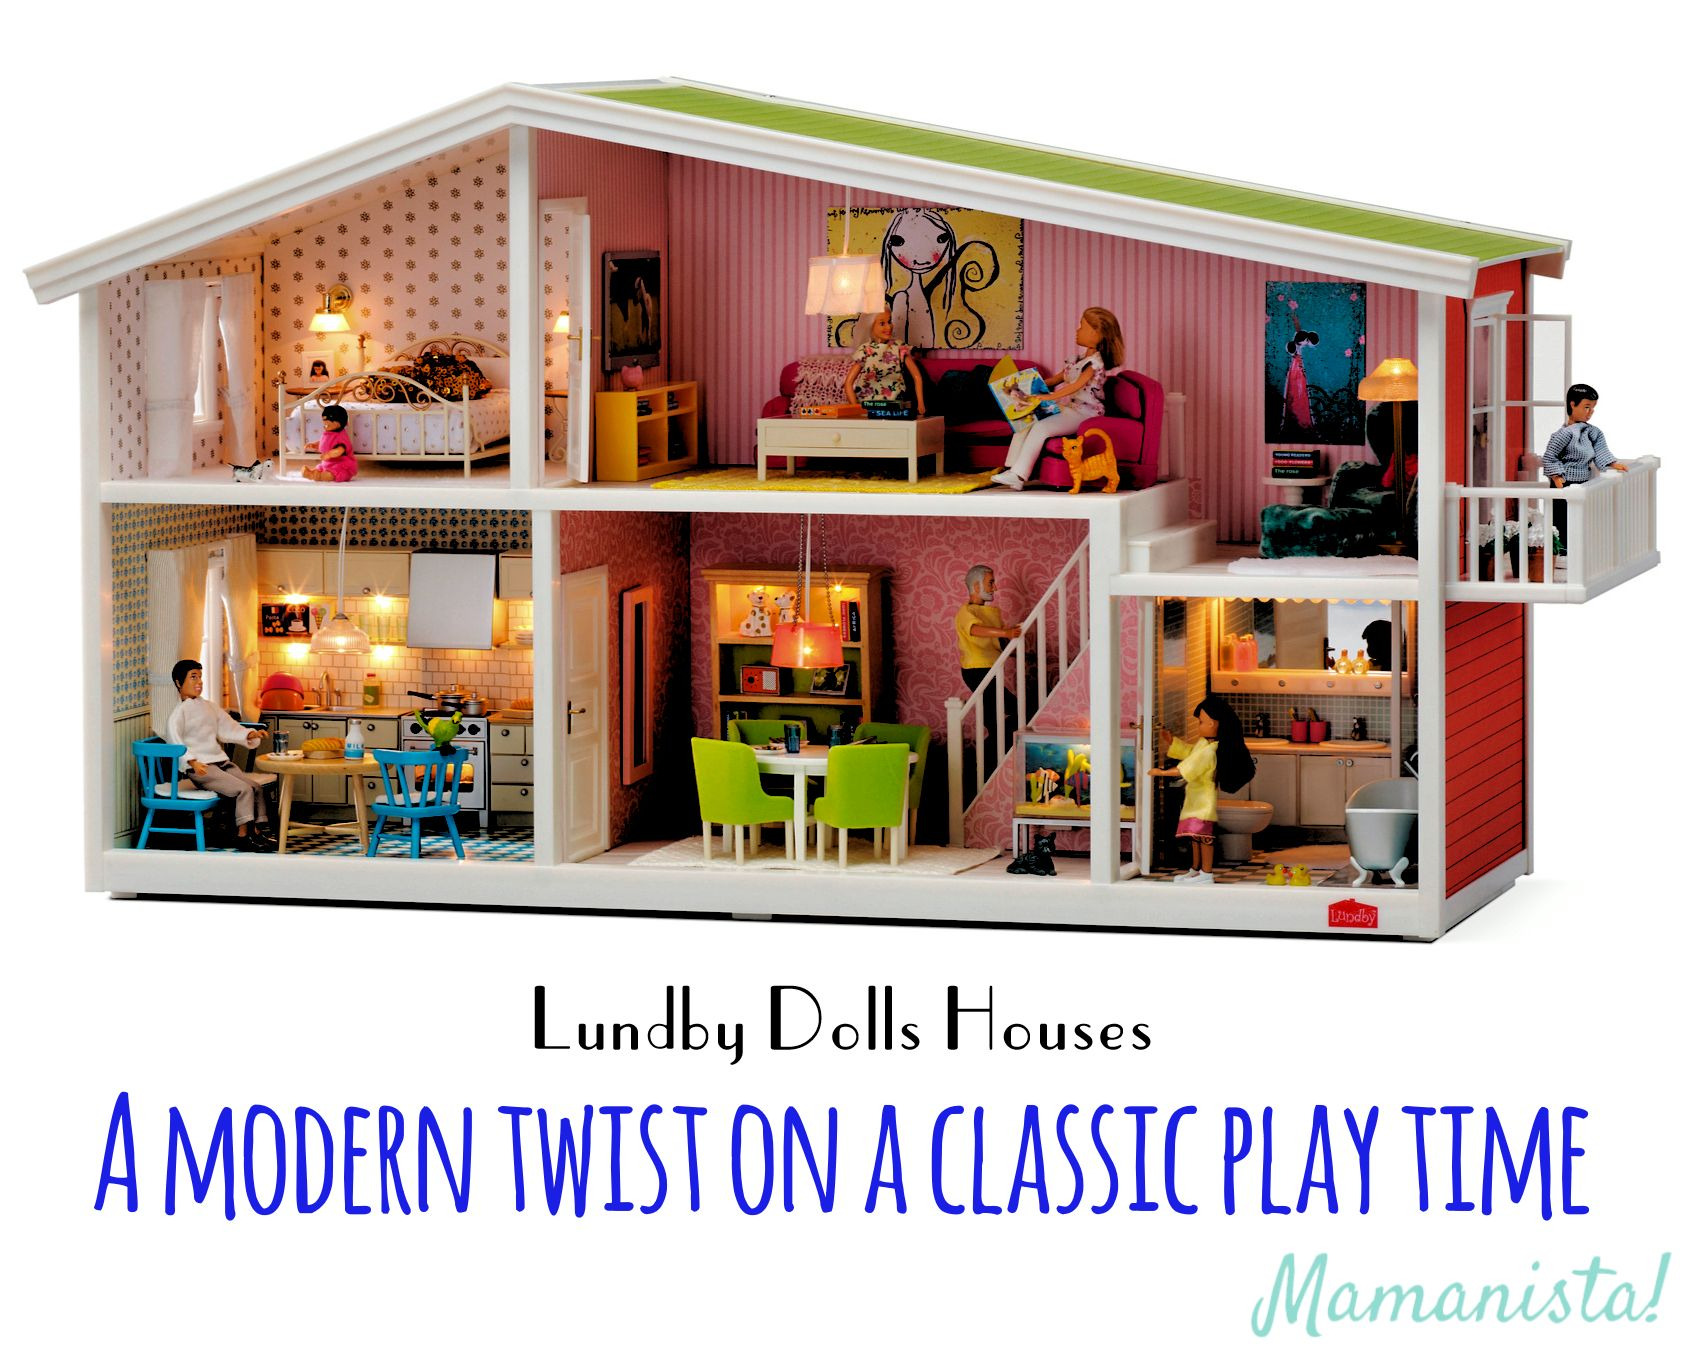 Lundby dolls houses: A modern twist on a classic play time, Part 1